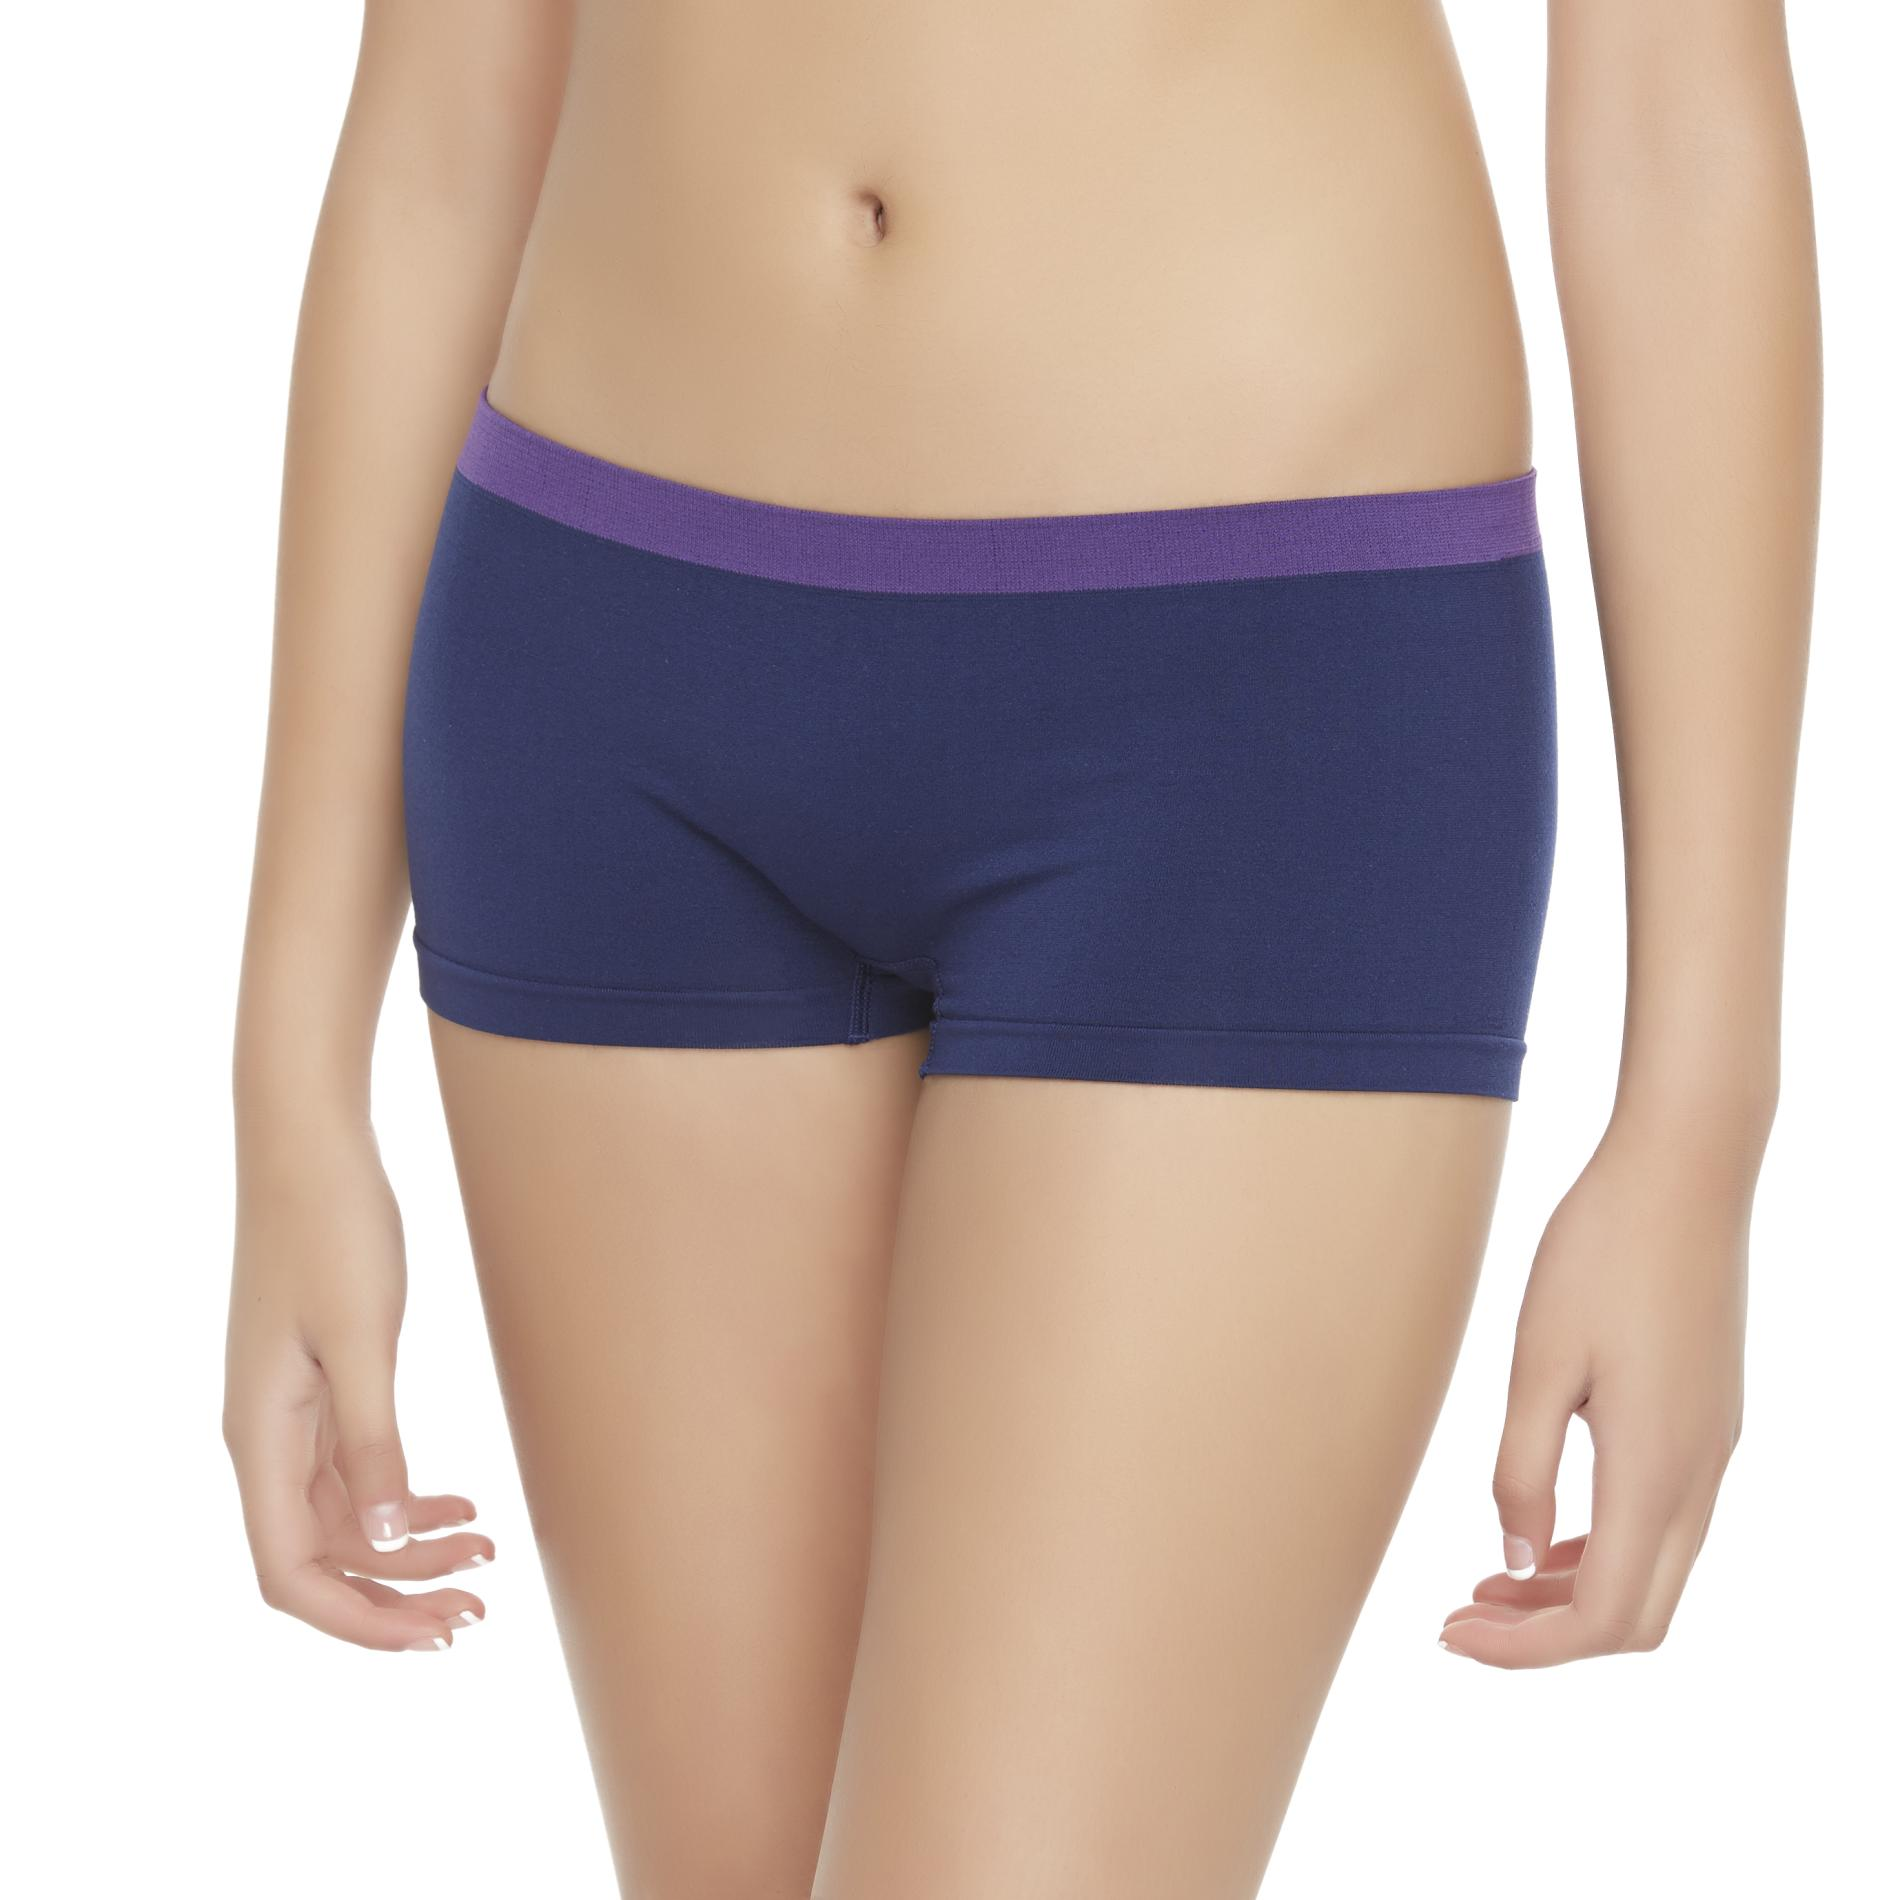 7 types of women underwear & when to actually wear them » ghbase•com™